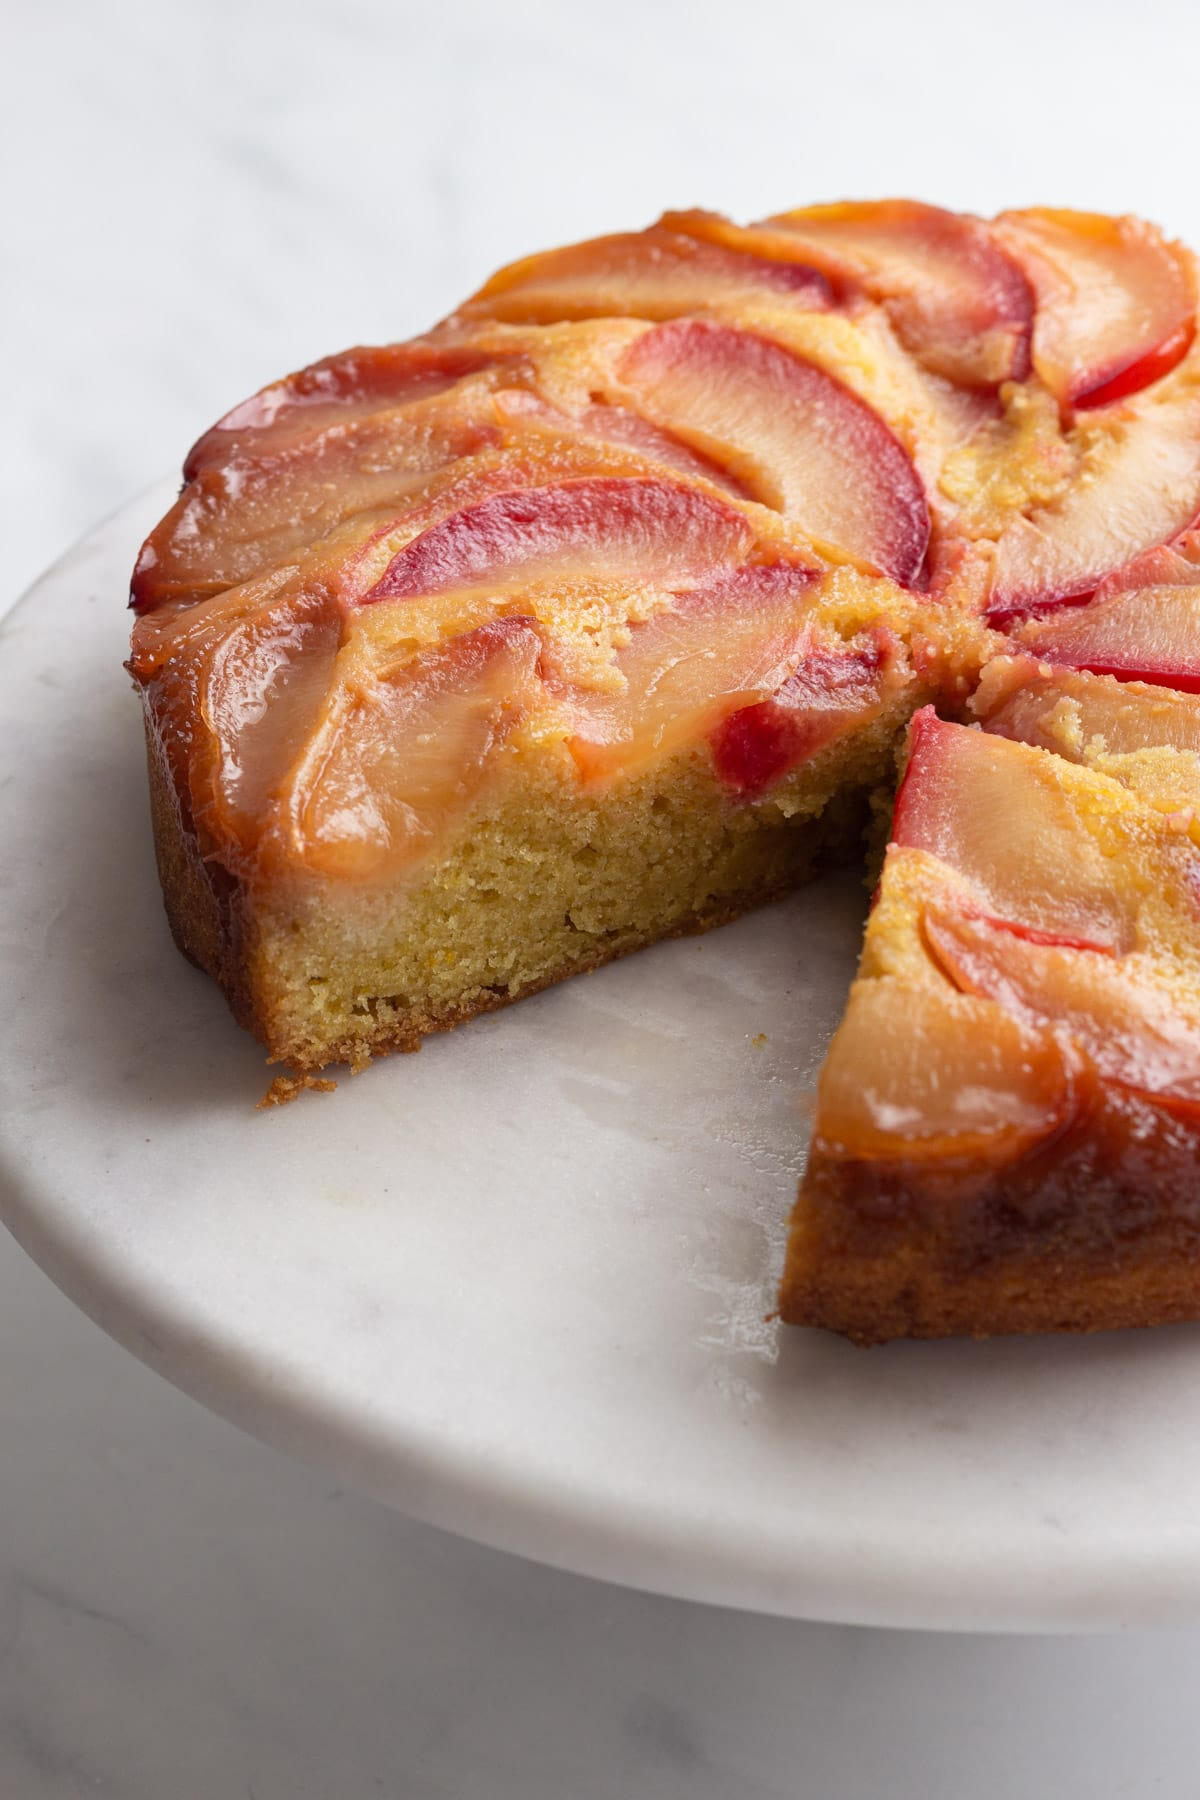 Closeup slightly angled view of a sliced plum cake revealing the cornmeal interior on a marble cake stand.